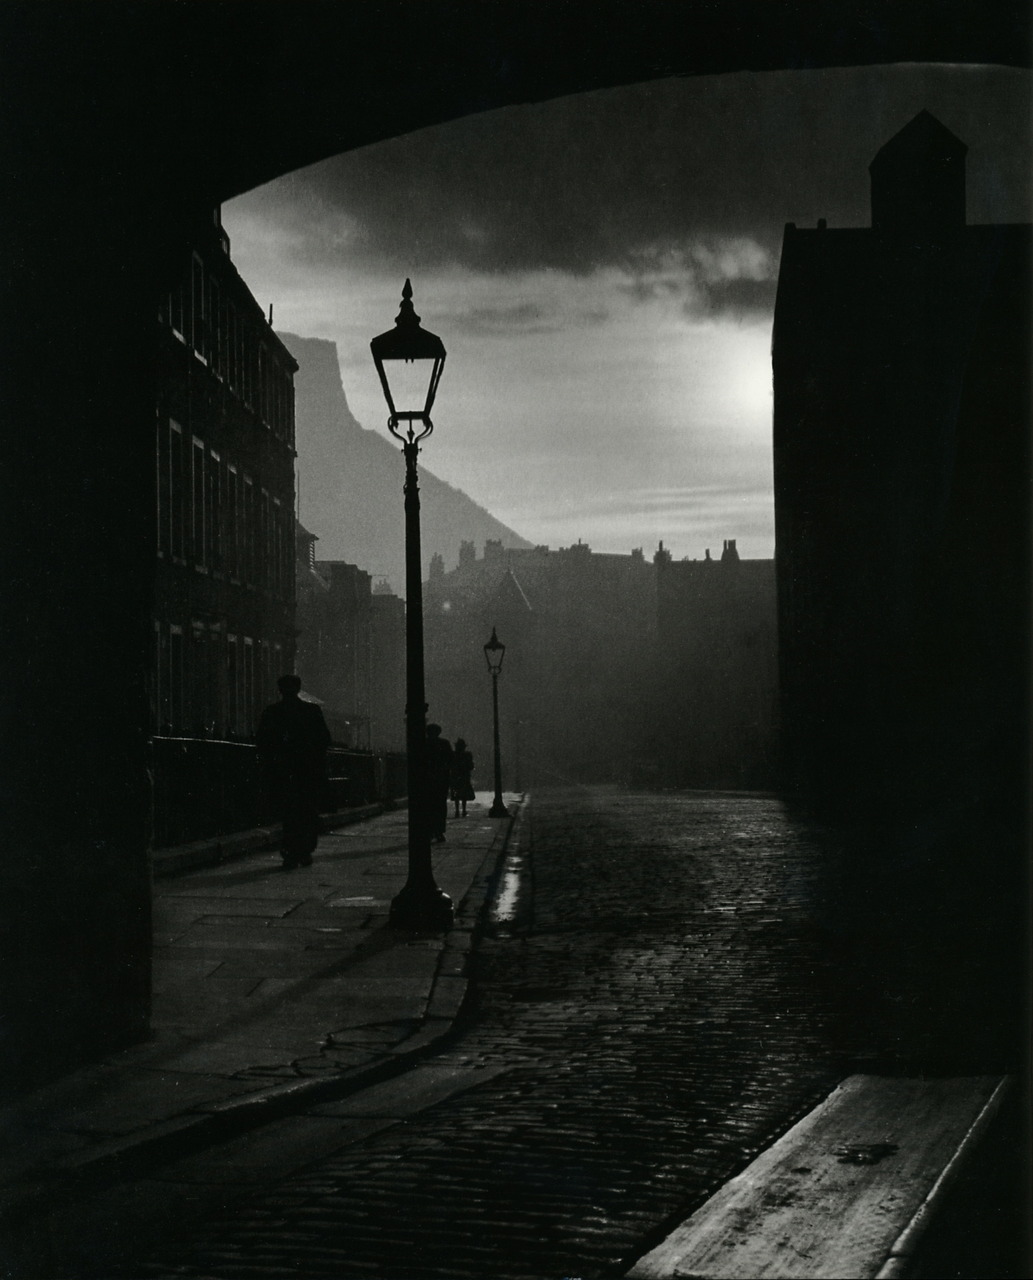 A street in Edinburgh, Bill Brandt